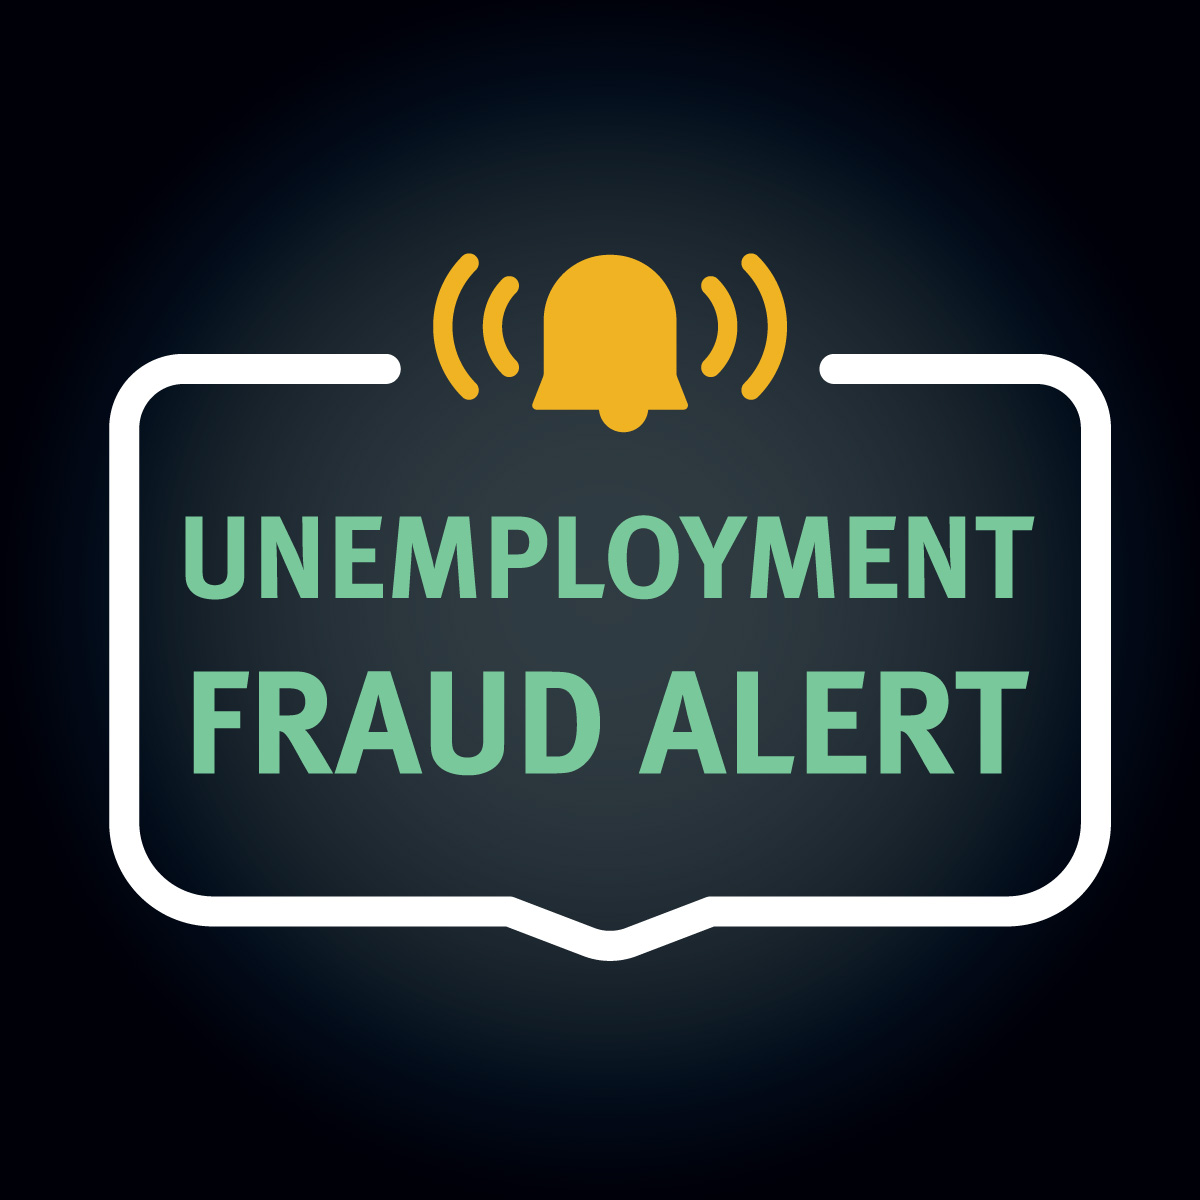 What To Do If You Suspect Unemployment Fraud